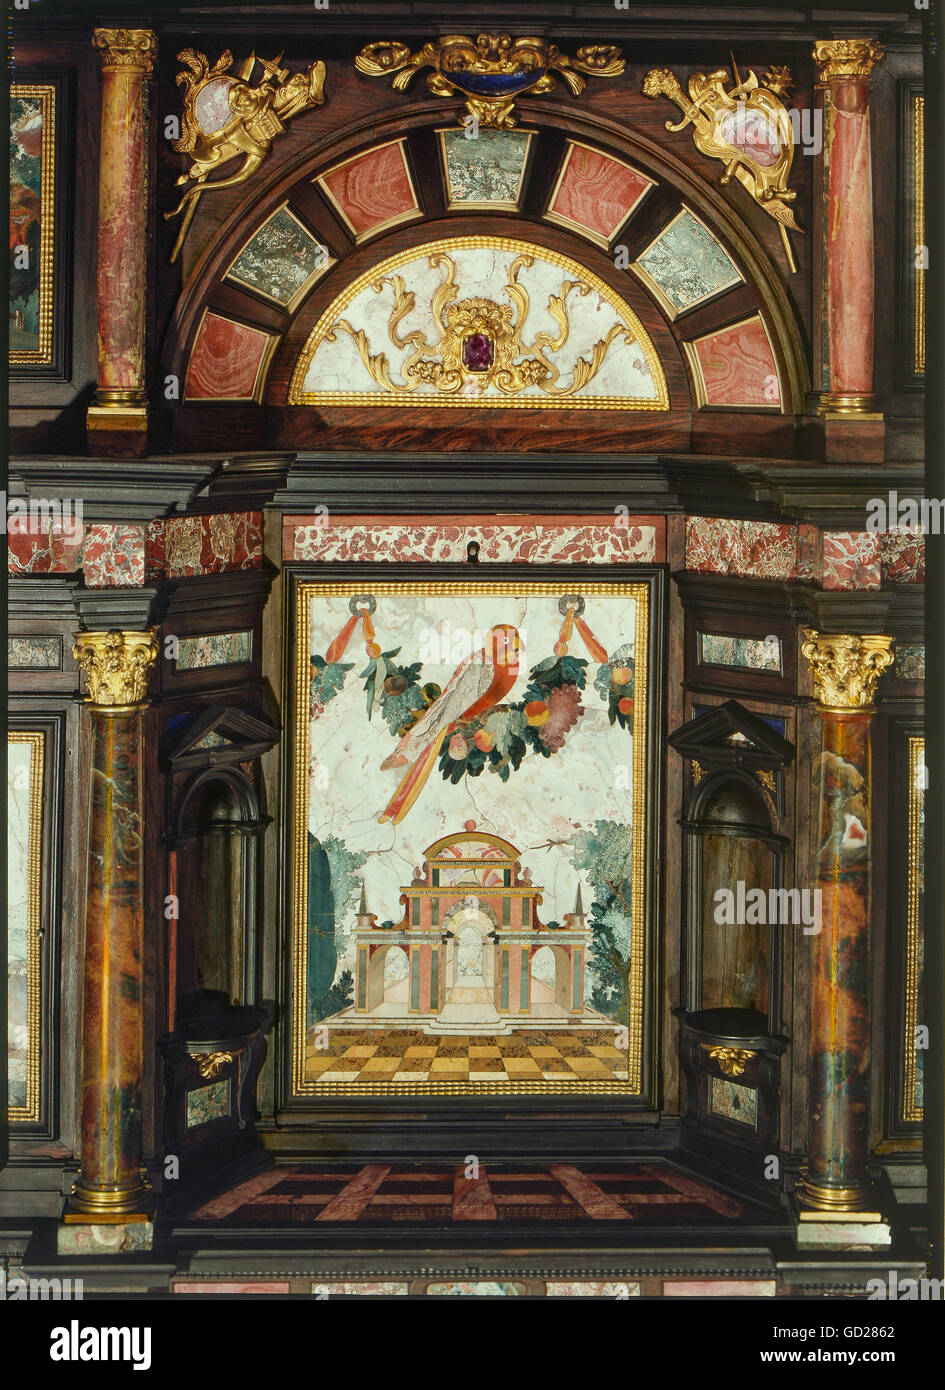 Ordinaire Fine Arts, Mosaic, Pietra Dura, Cabinet Of The Prince Elector Maximilian II  Of Bavaria, Inset With Small Temple And Parrot, Metal Fittings With Golden  Brass ...